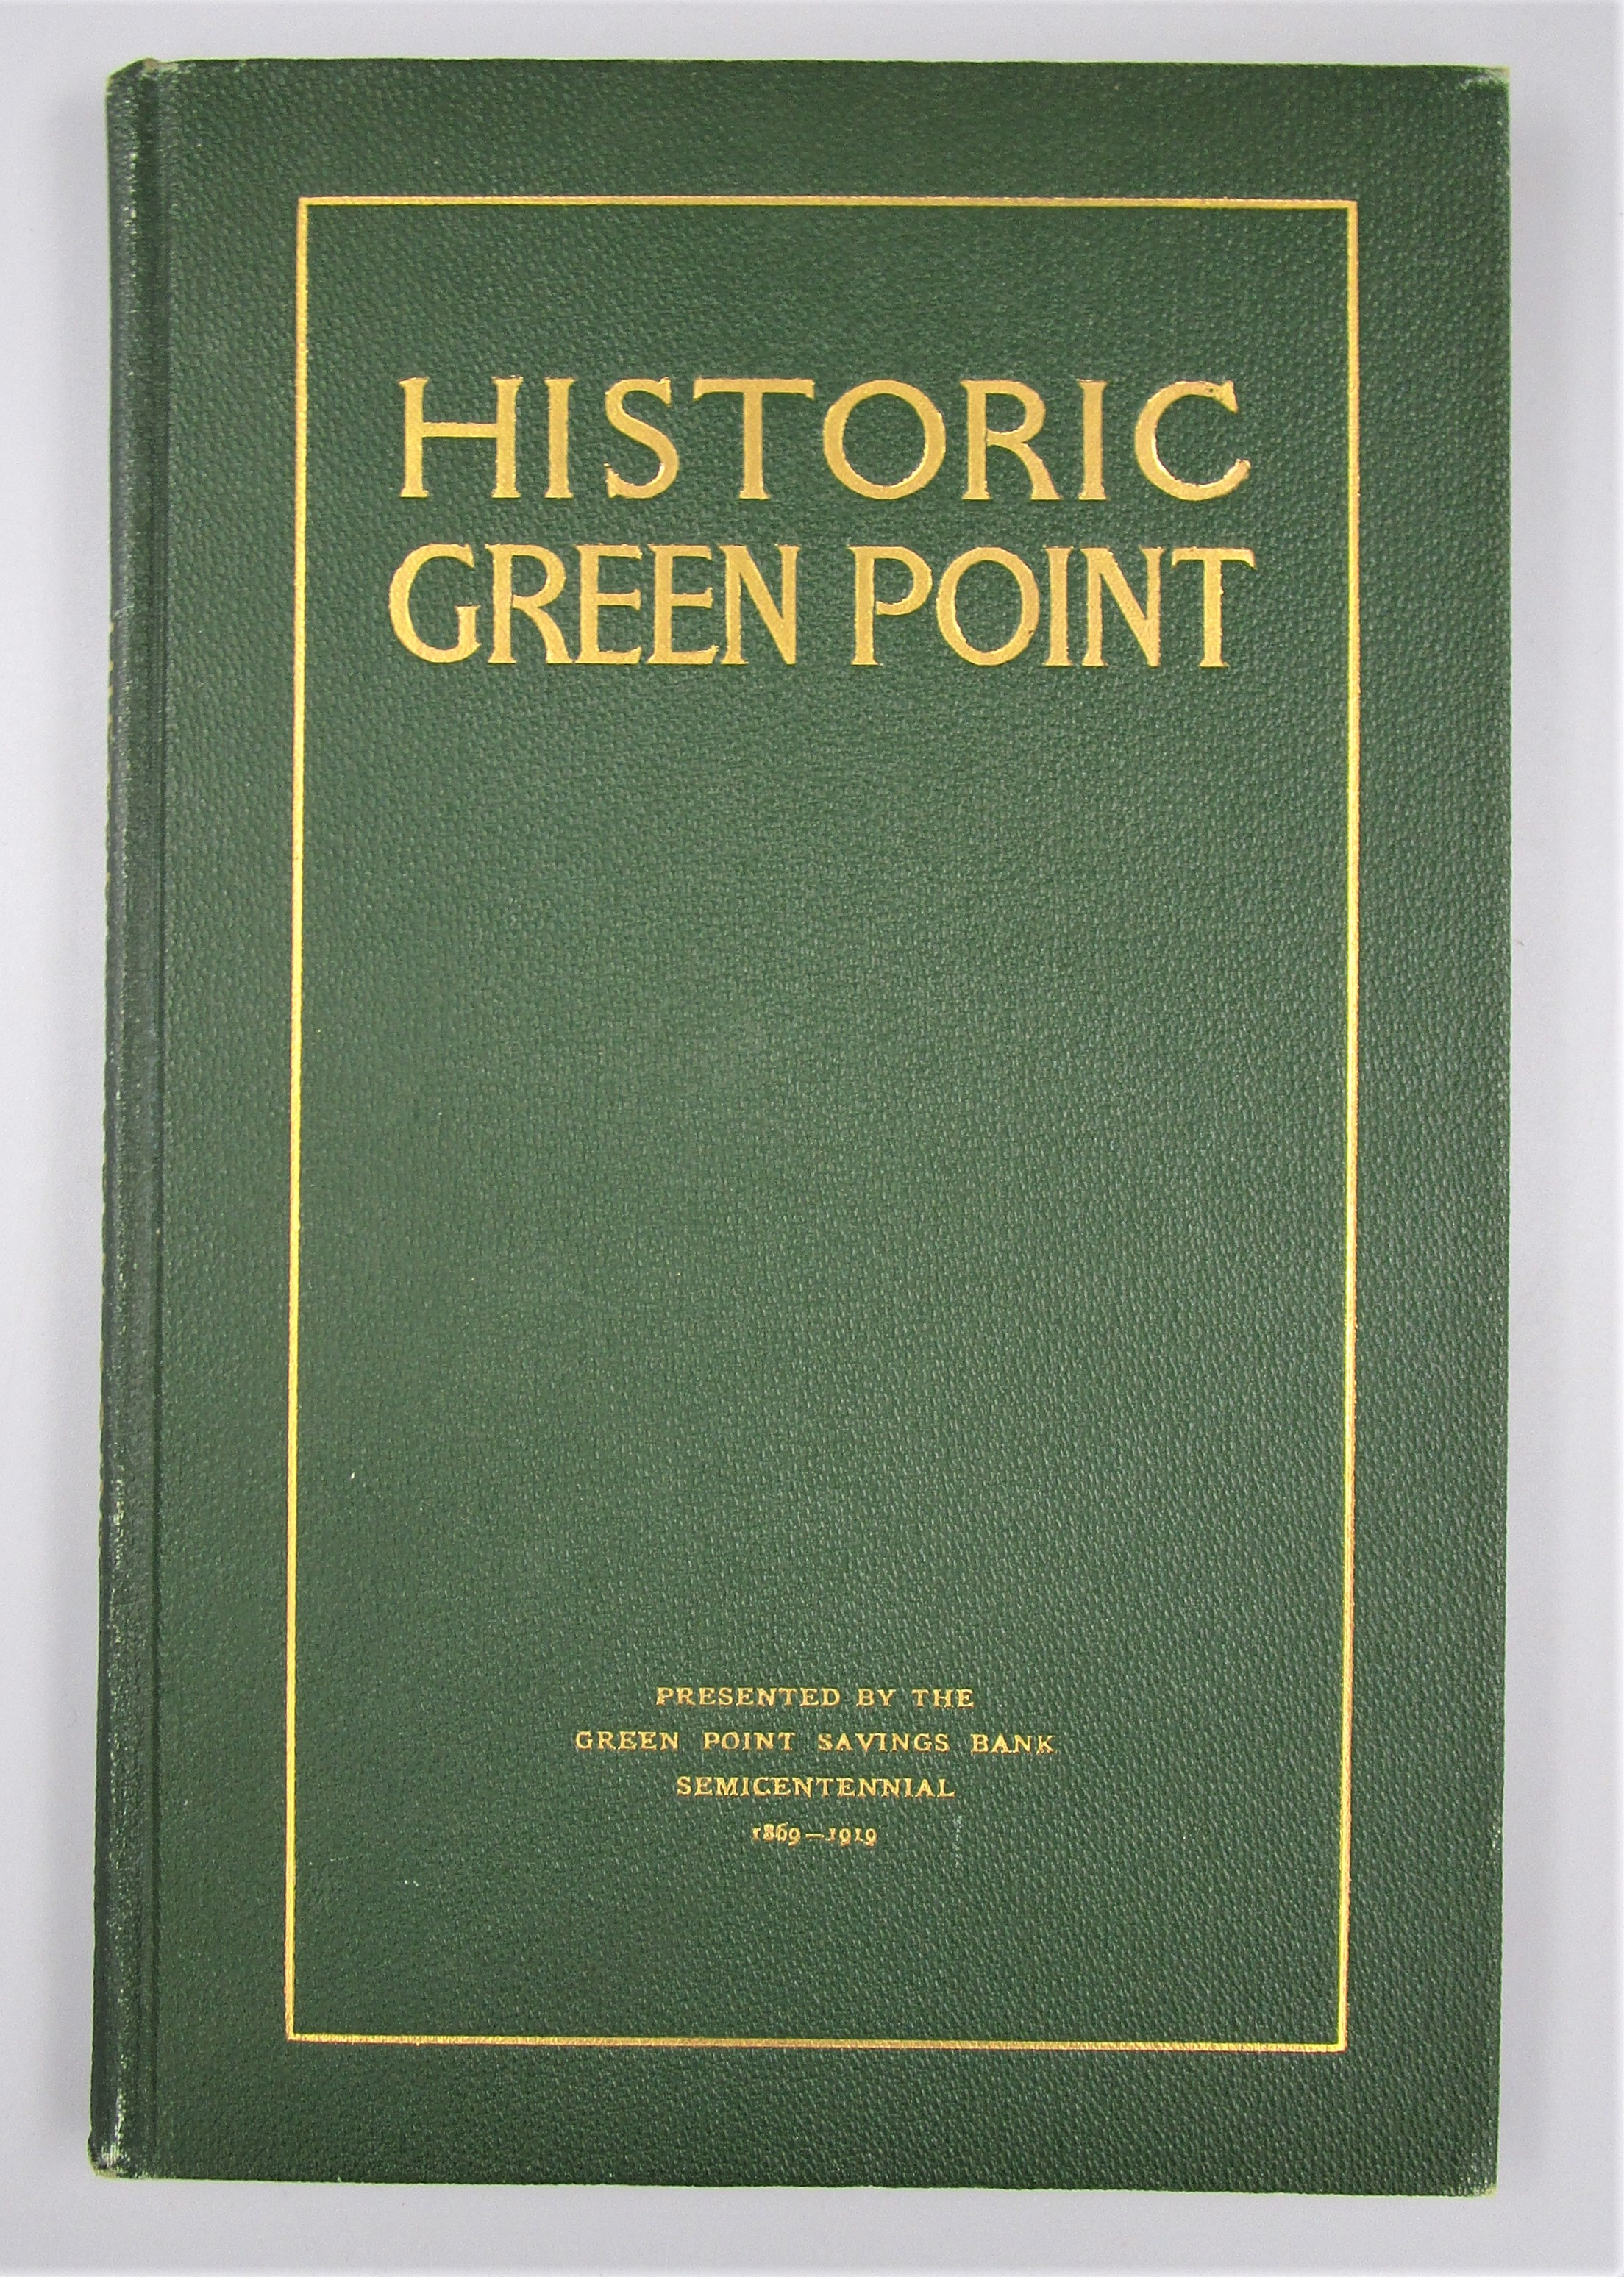 HISTORIC GREEN POINT, by William L. Felter, Ph.D. - 1919